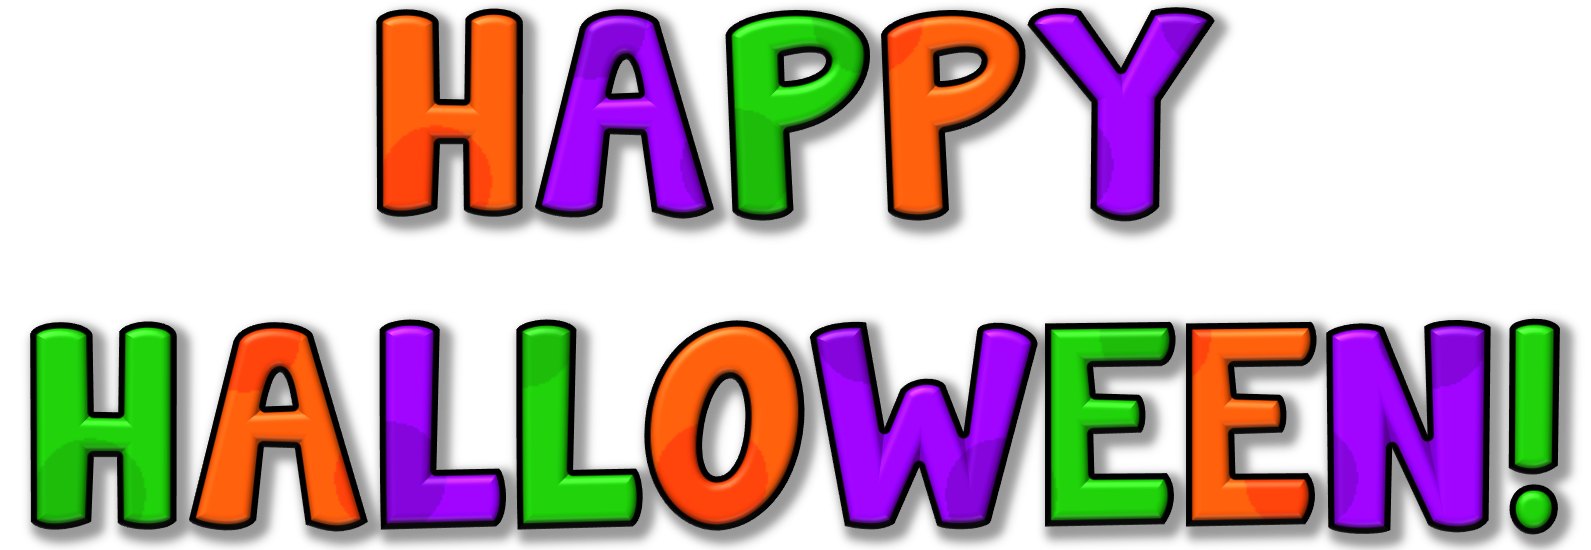 Free halloween birthday clipart banner royalty free library Free Happy Halloween Clipart at GetDrawings.com | Free for personal ... banner royalty free library